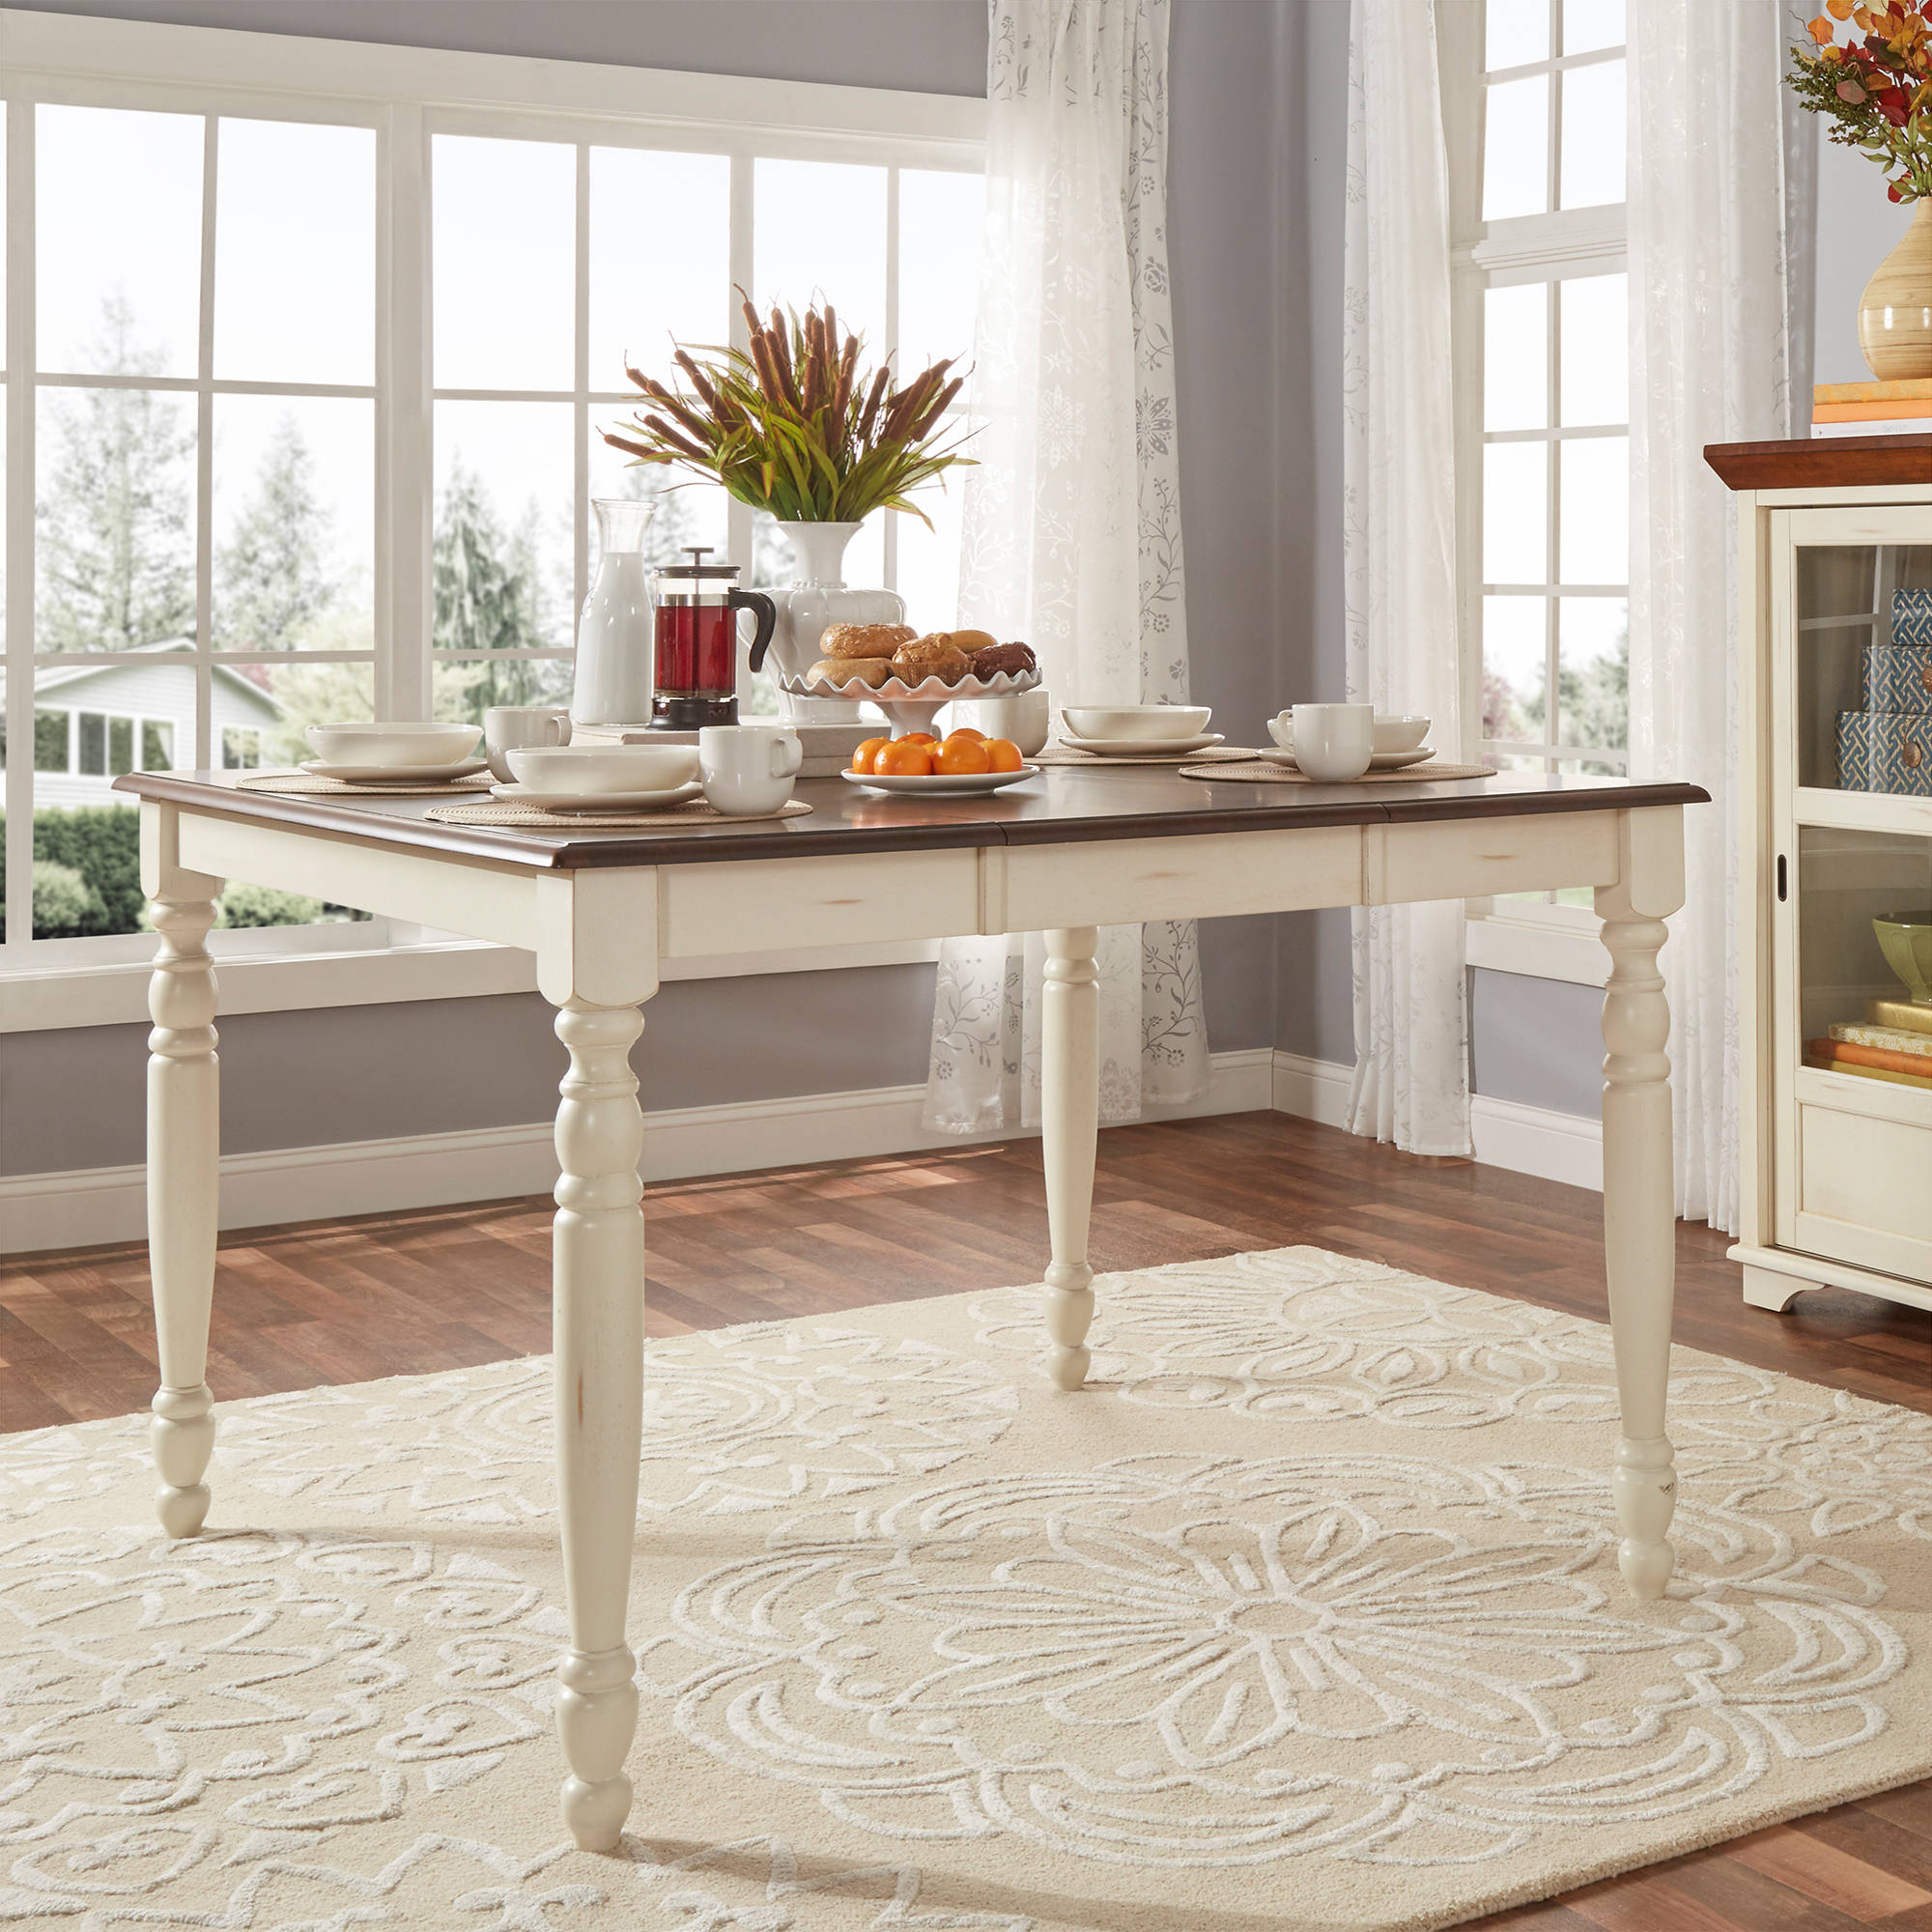 Weston Home Two Tone Counter Height Table, Antique White & Warm Cherry